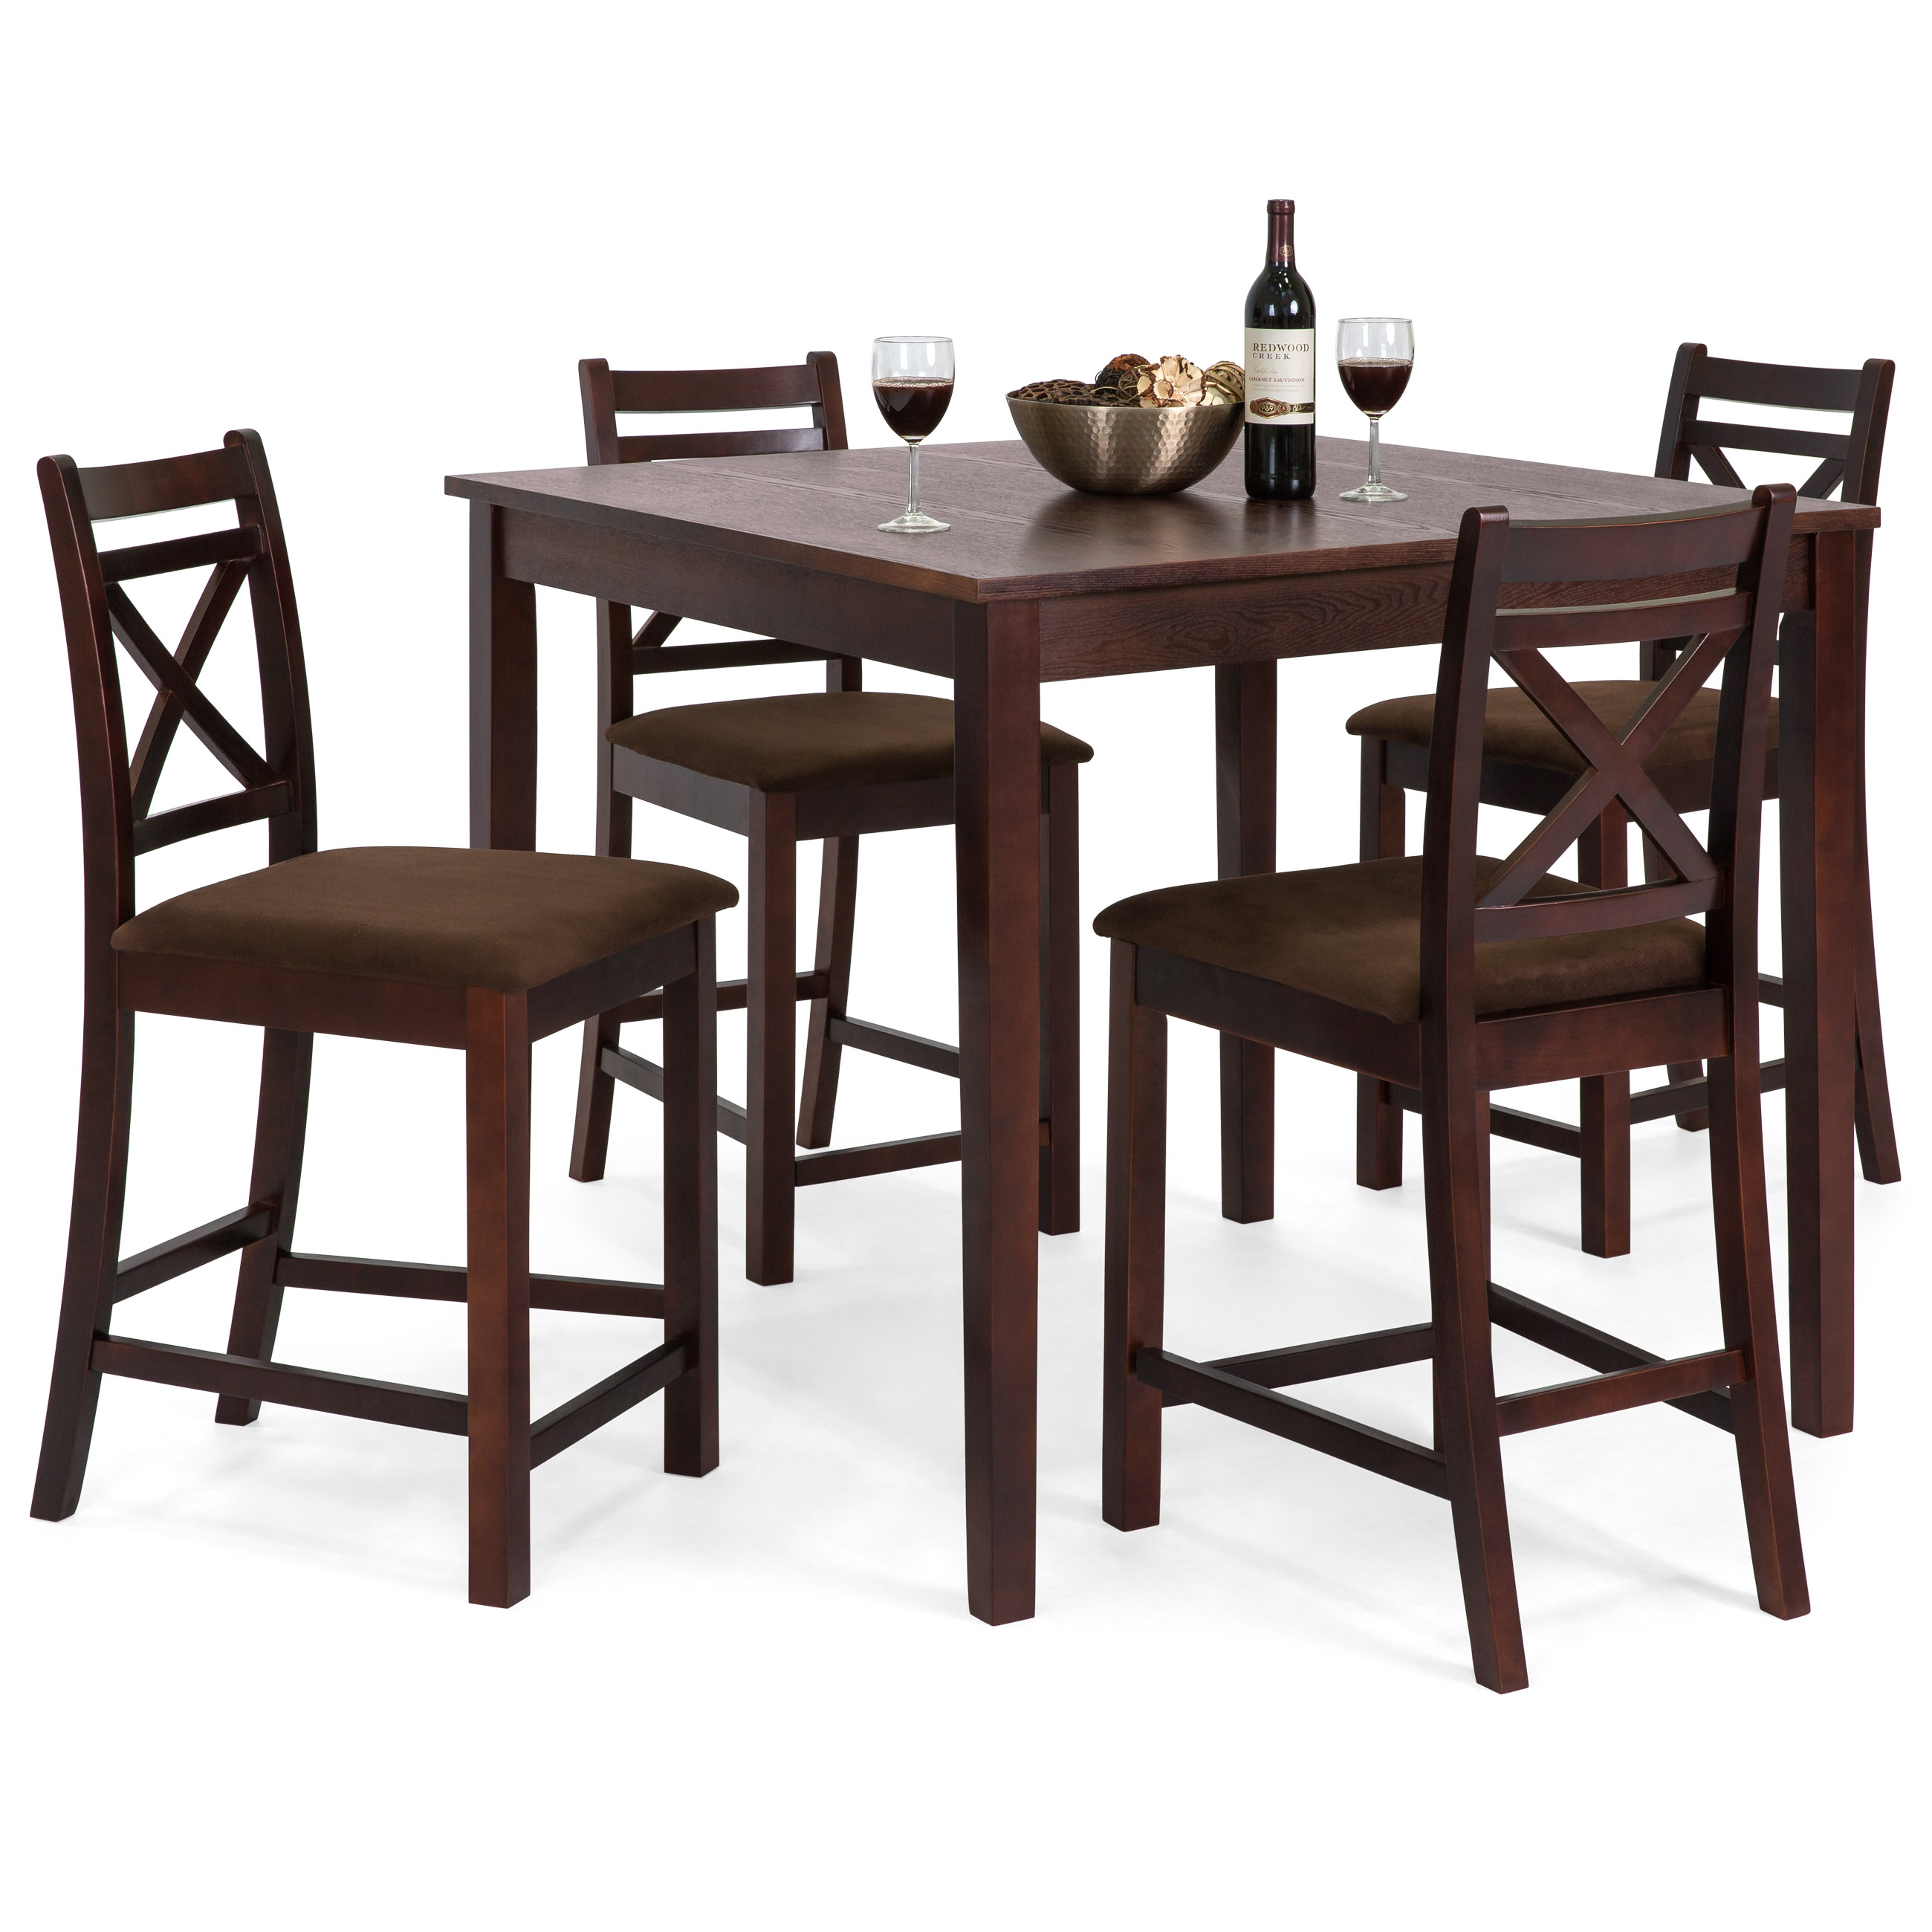 Best Choice Products 5-Piece Wooden Counter Height Square Dining Table Set w  4 Chairs and Padded Seats Espresso by Best Choice Products